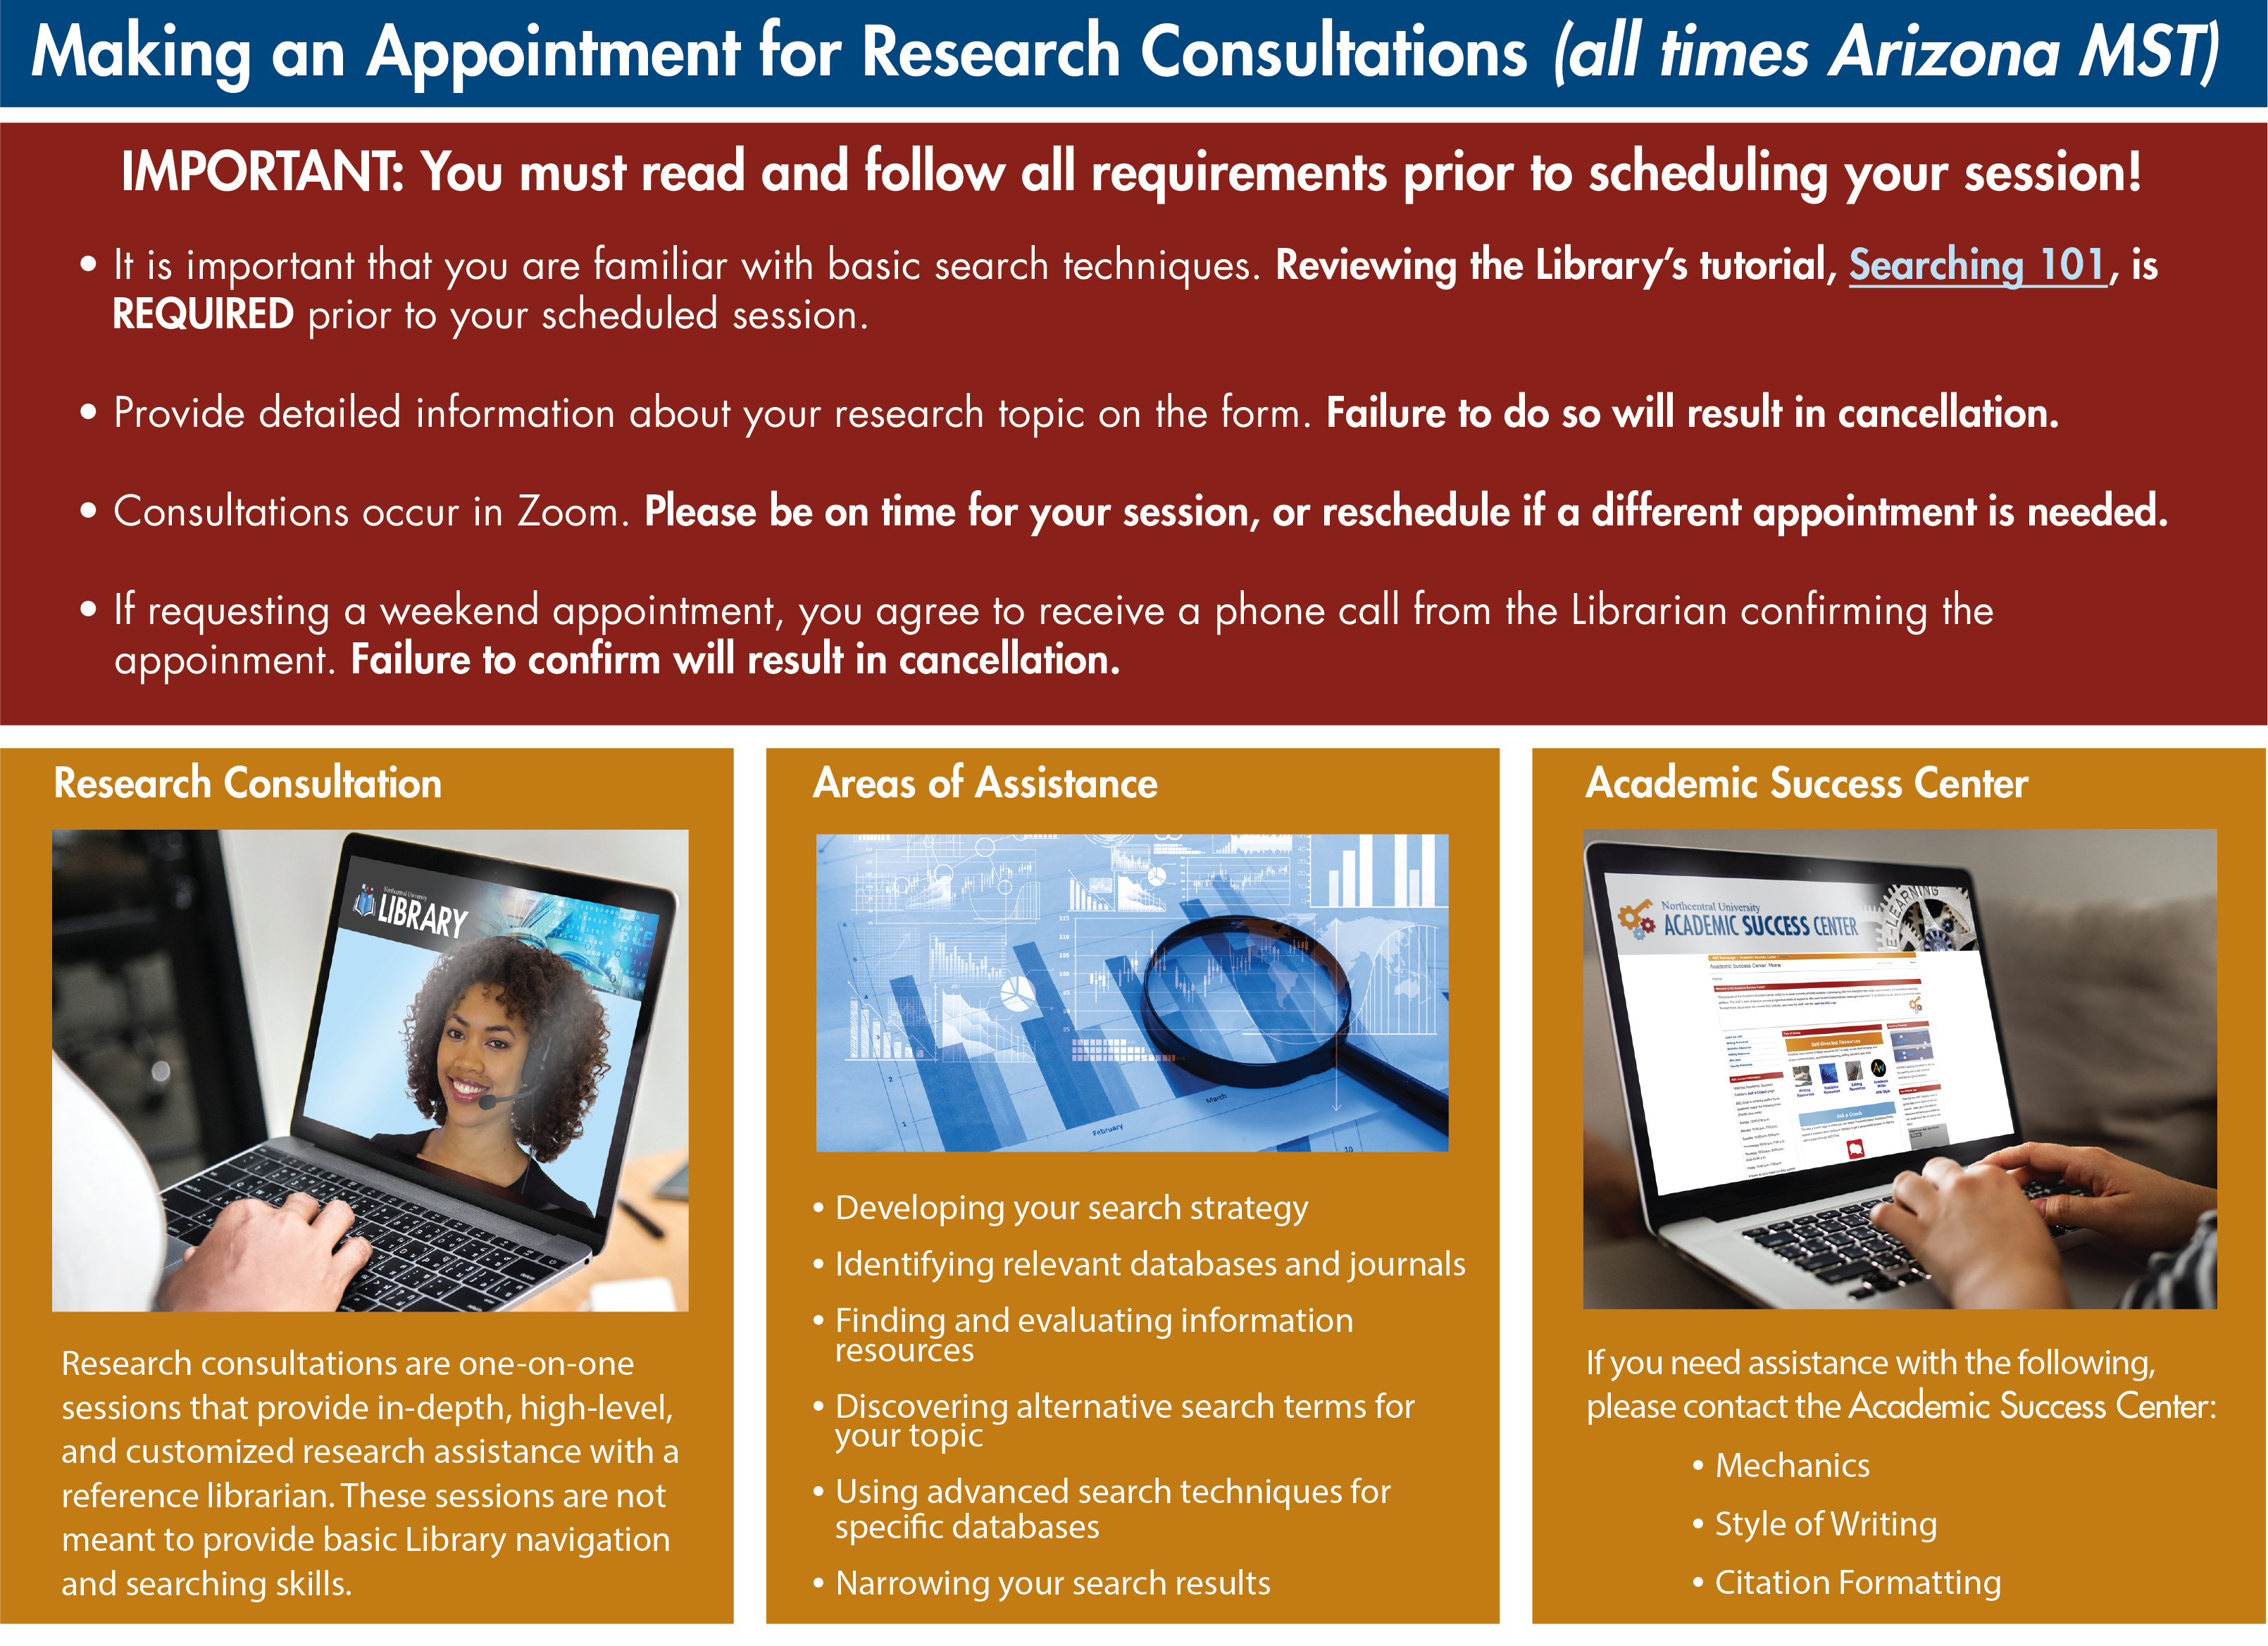 Library Research Consultation Policies